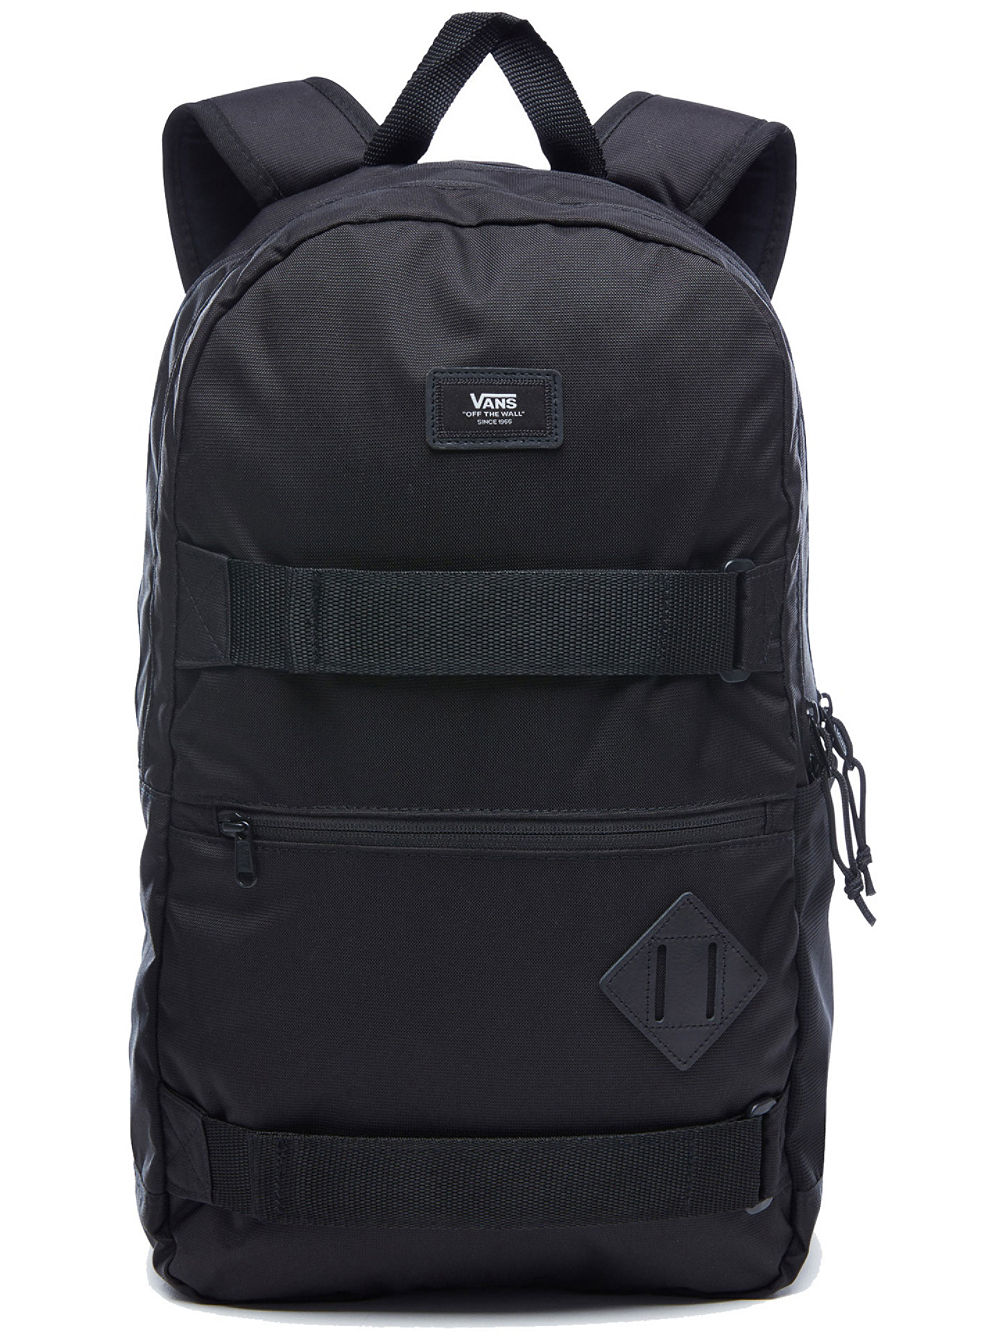 Authentic III Skate Backpack